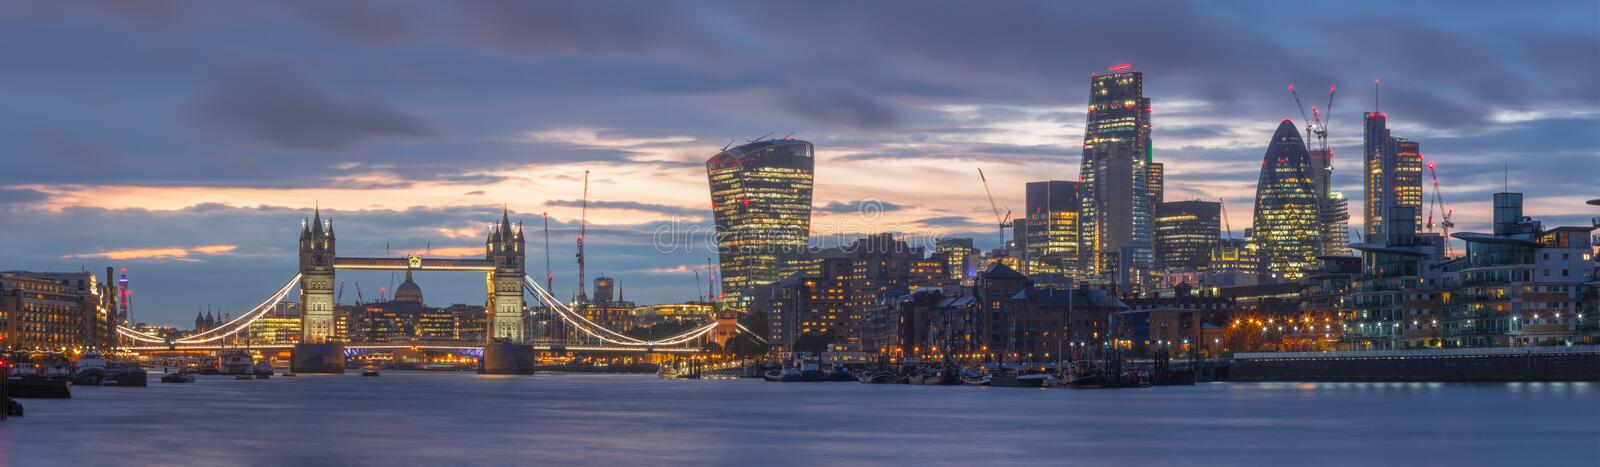 London - The panorama of the Tower bridge, riverside and skyscrapers at dusk with the dramatic clouds royalty free stock photography